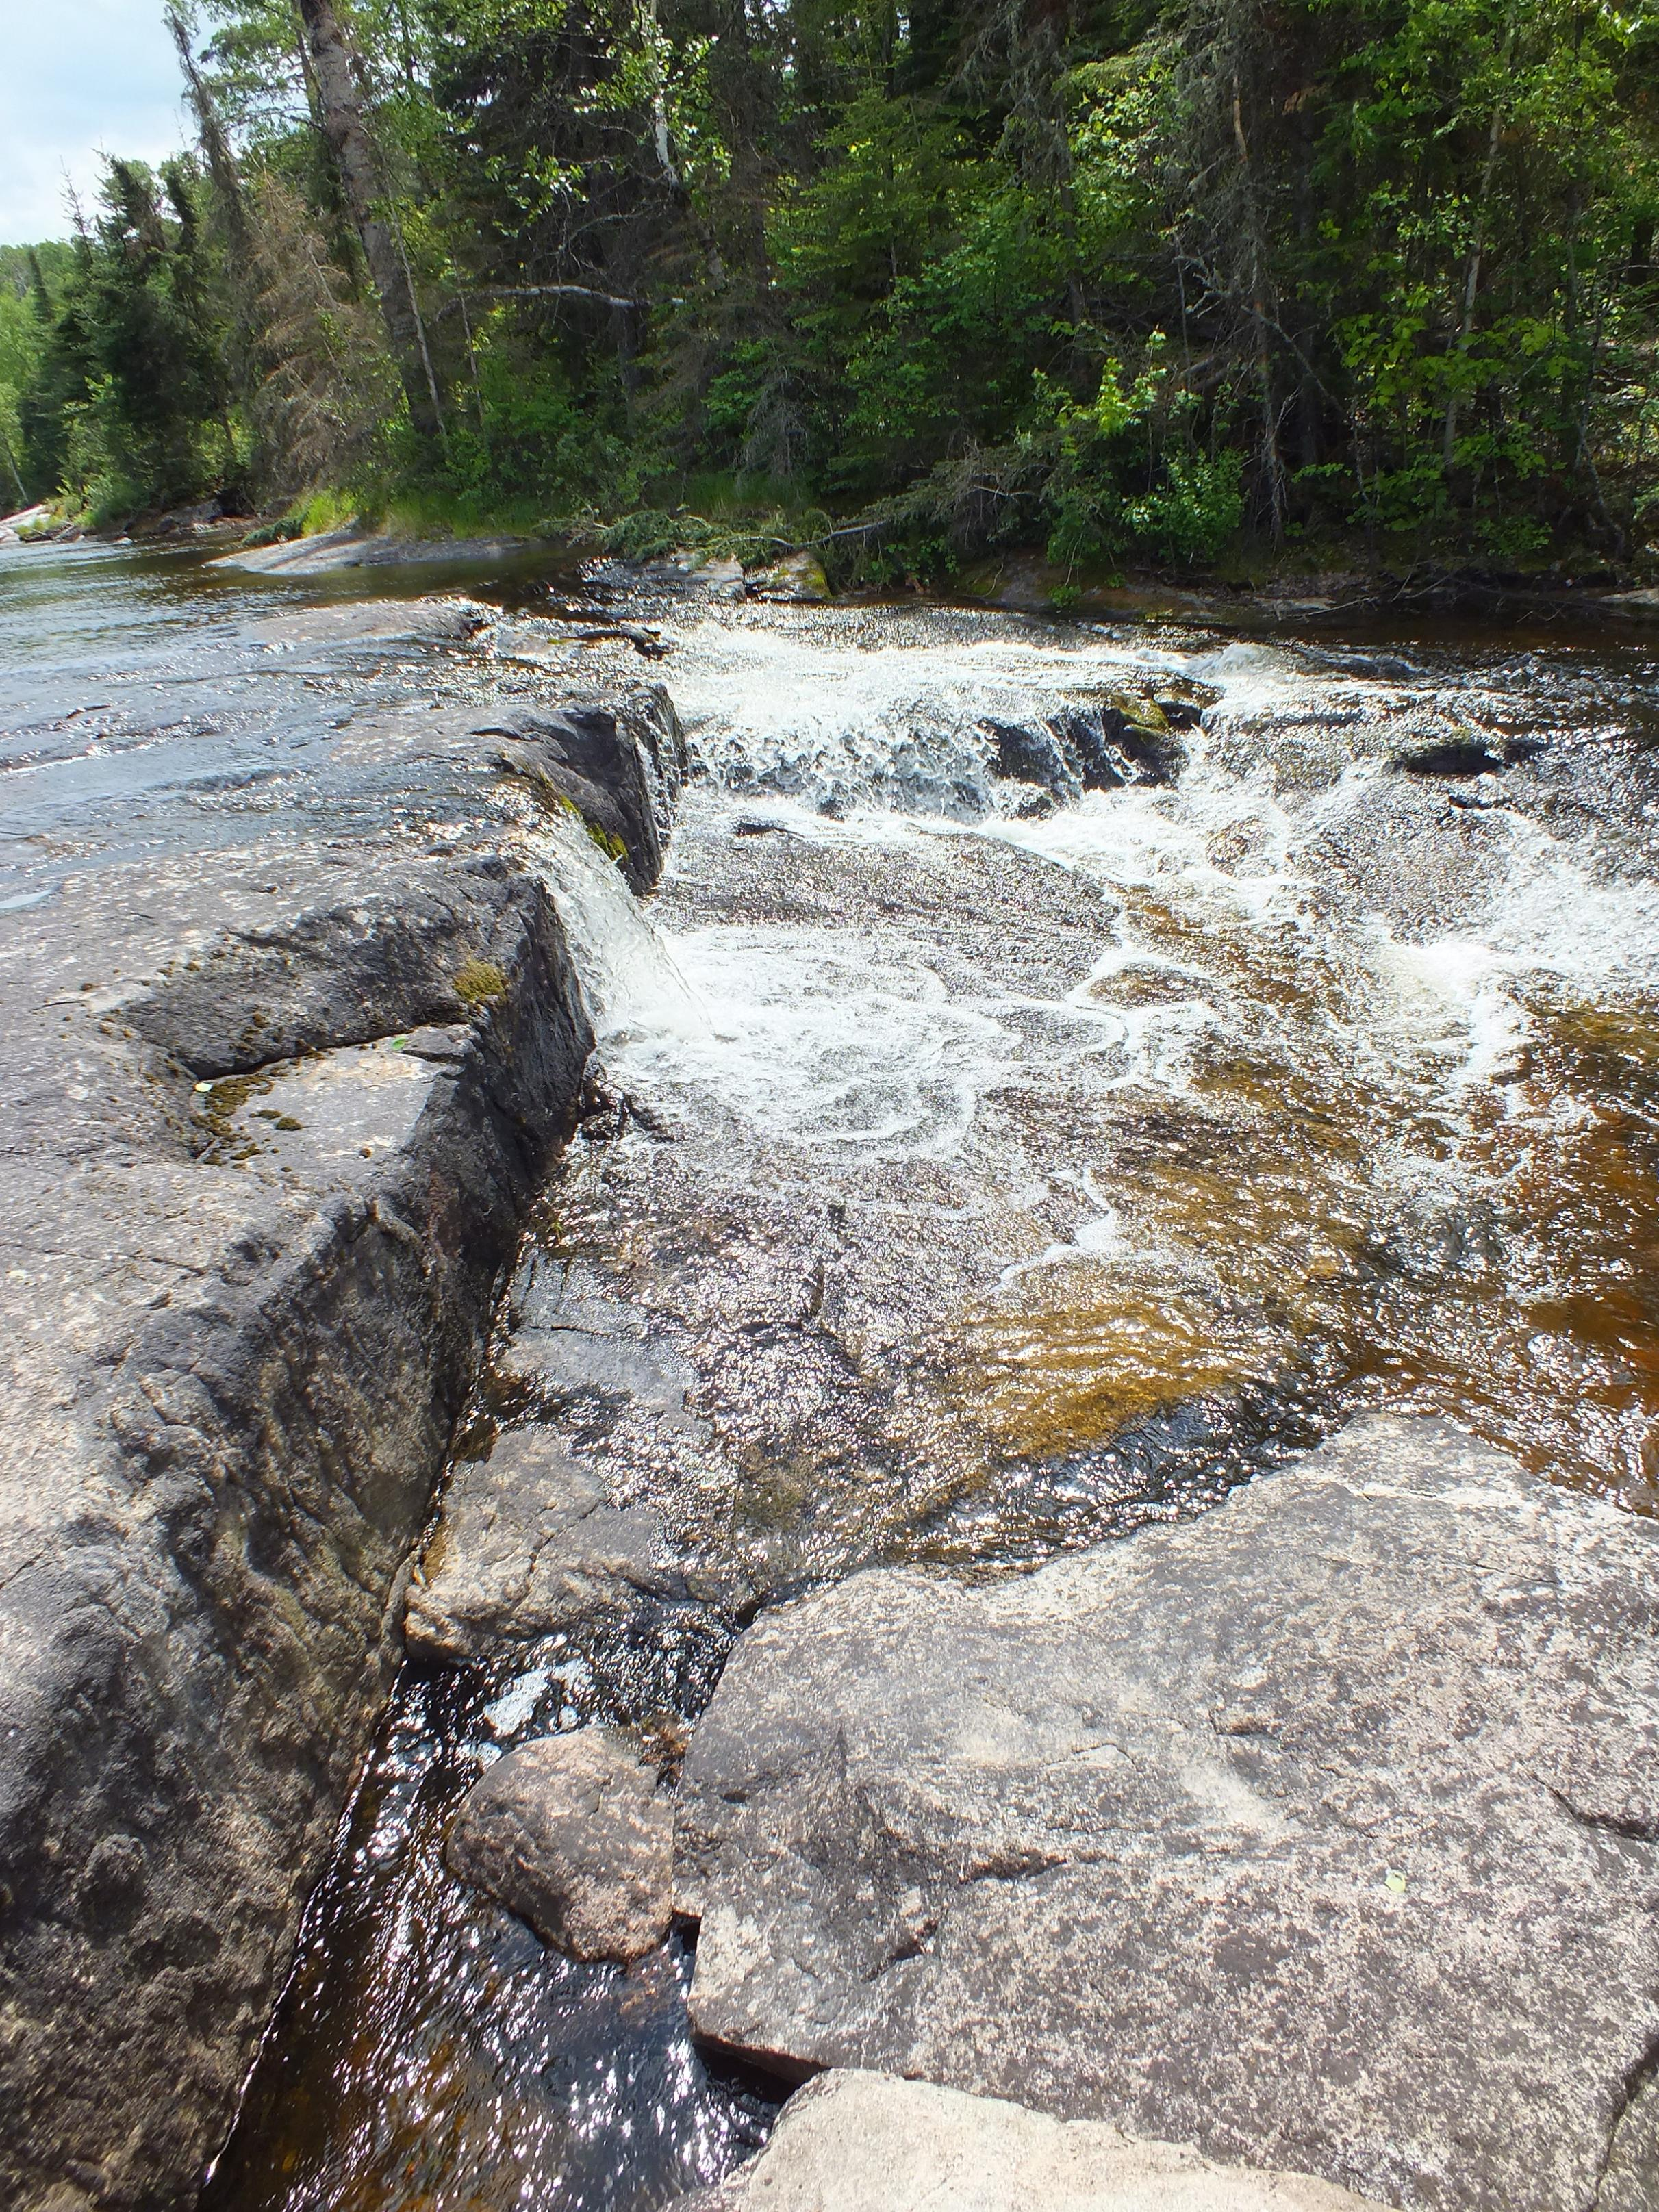 Larus Falls (small side channel)